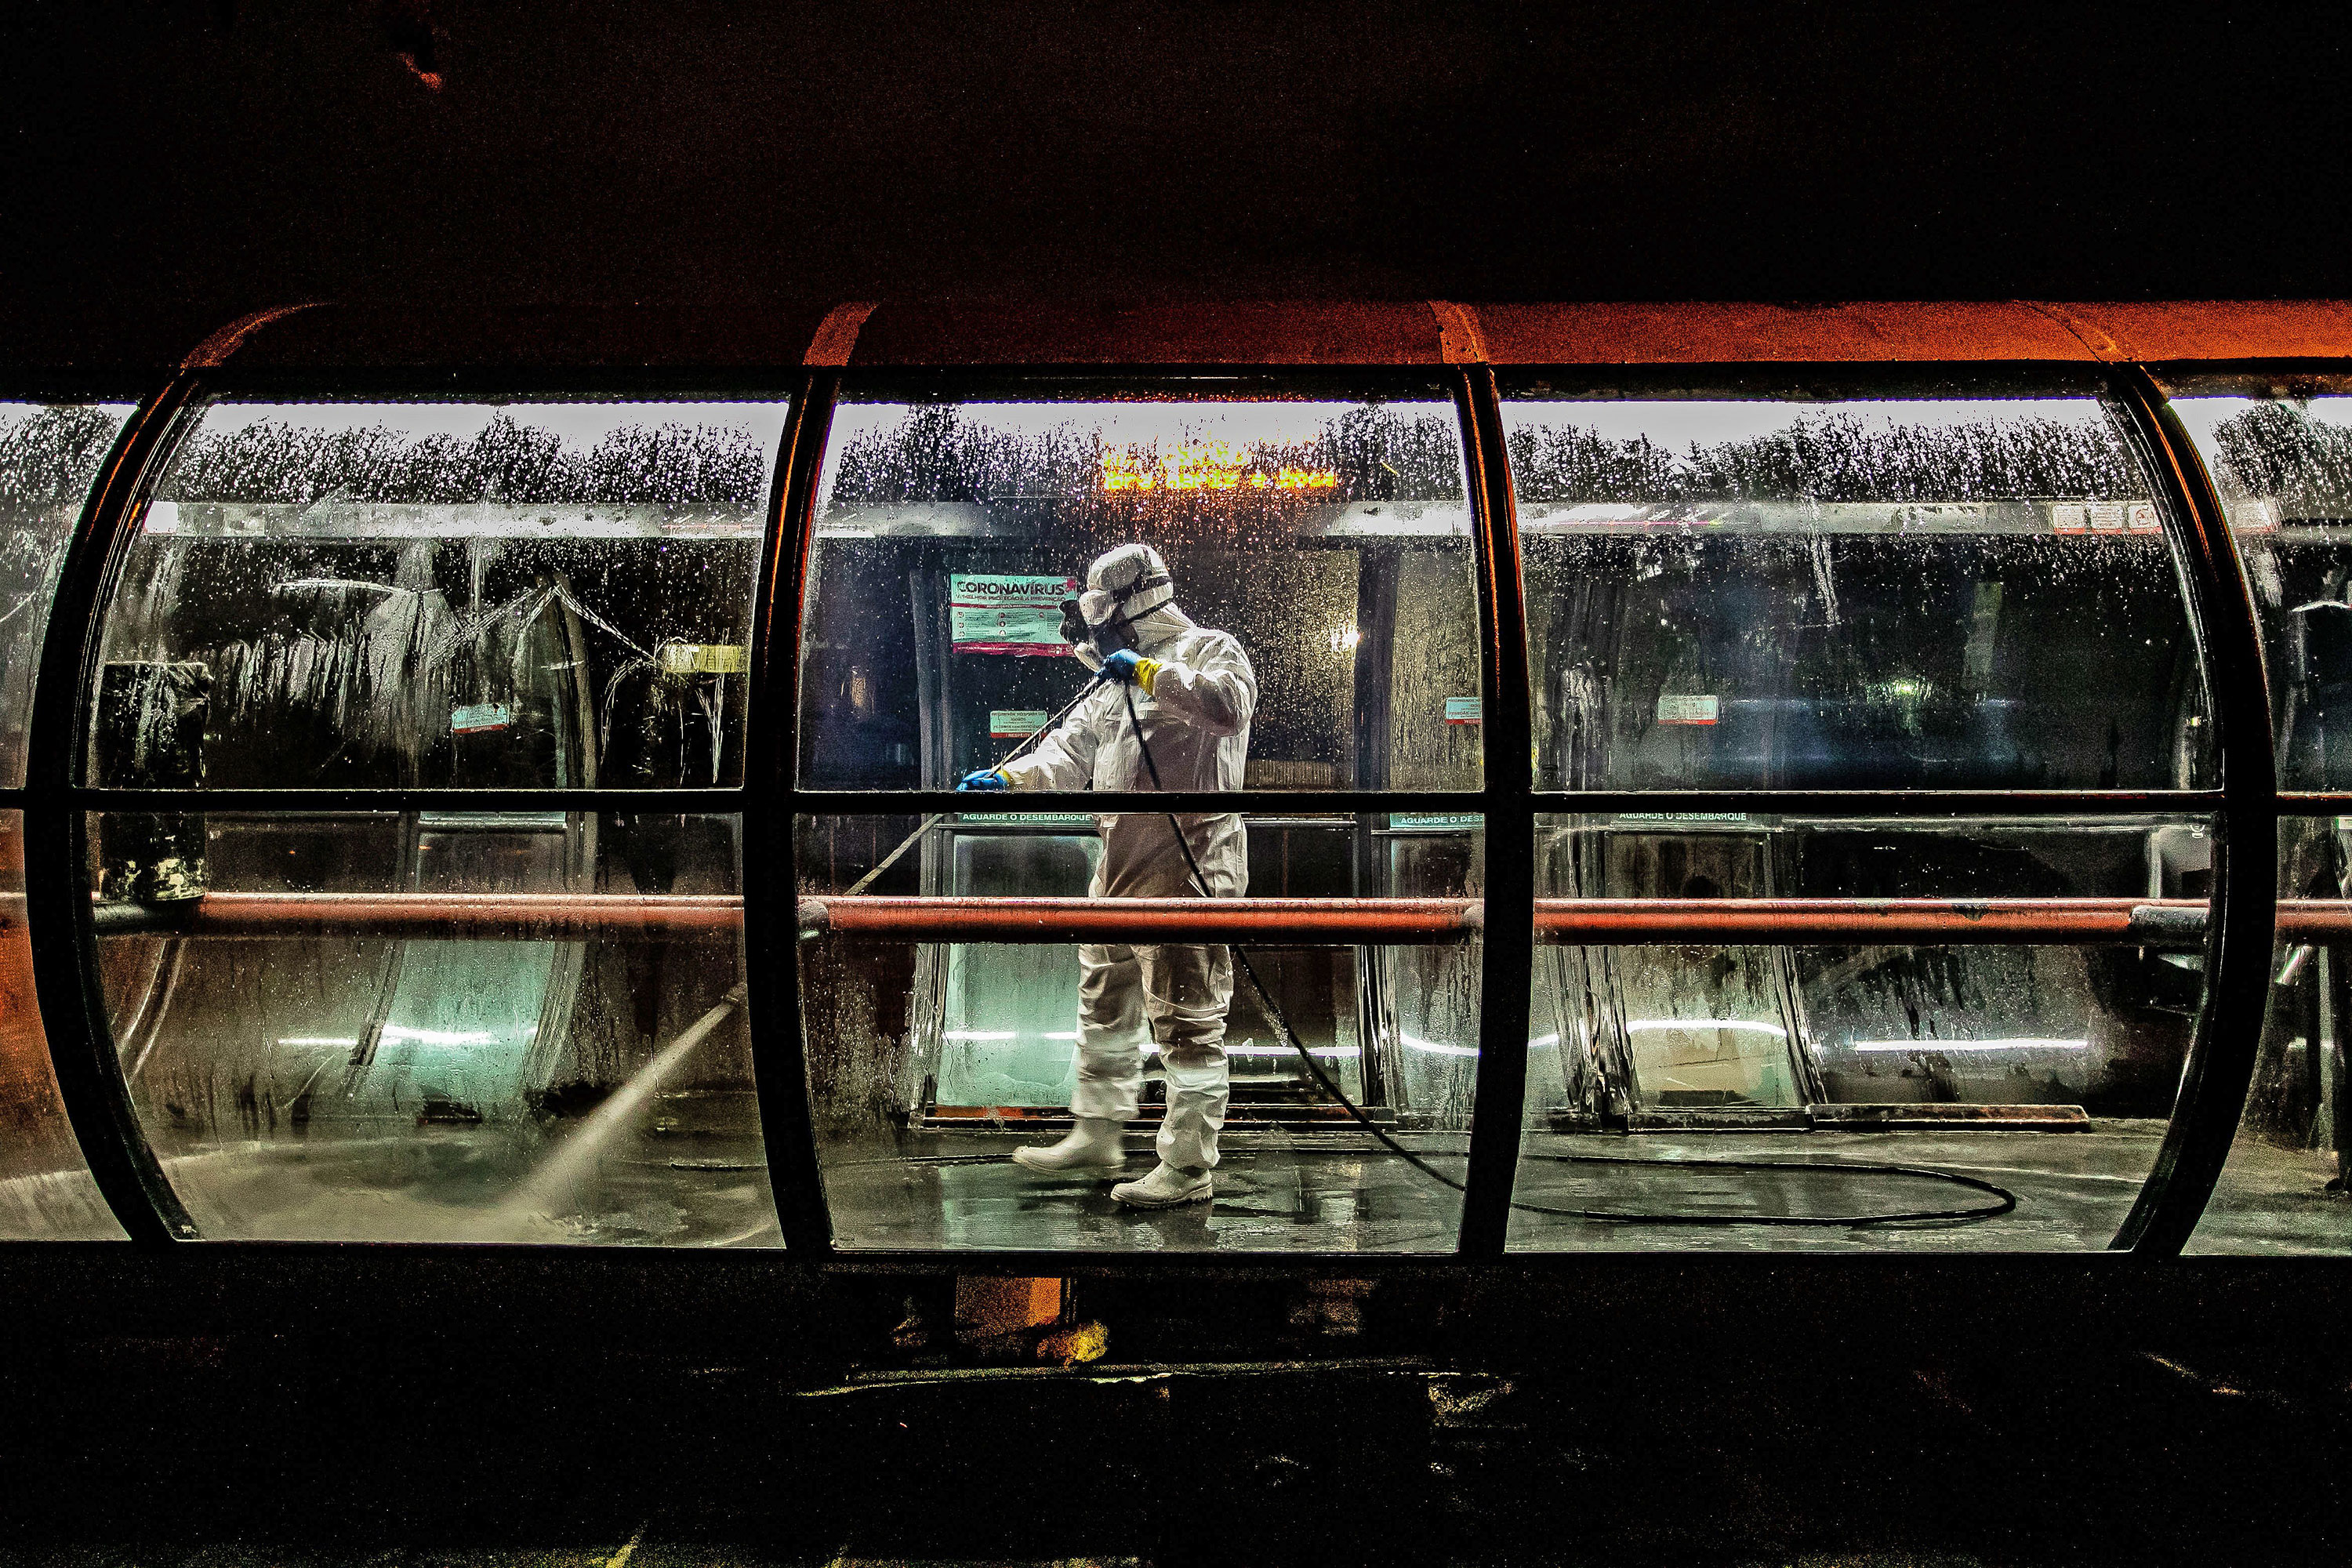 A volunteer worker disinfects a public bus station in Curitiba, Brazil on April 1.